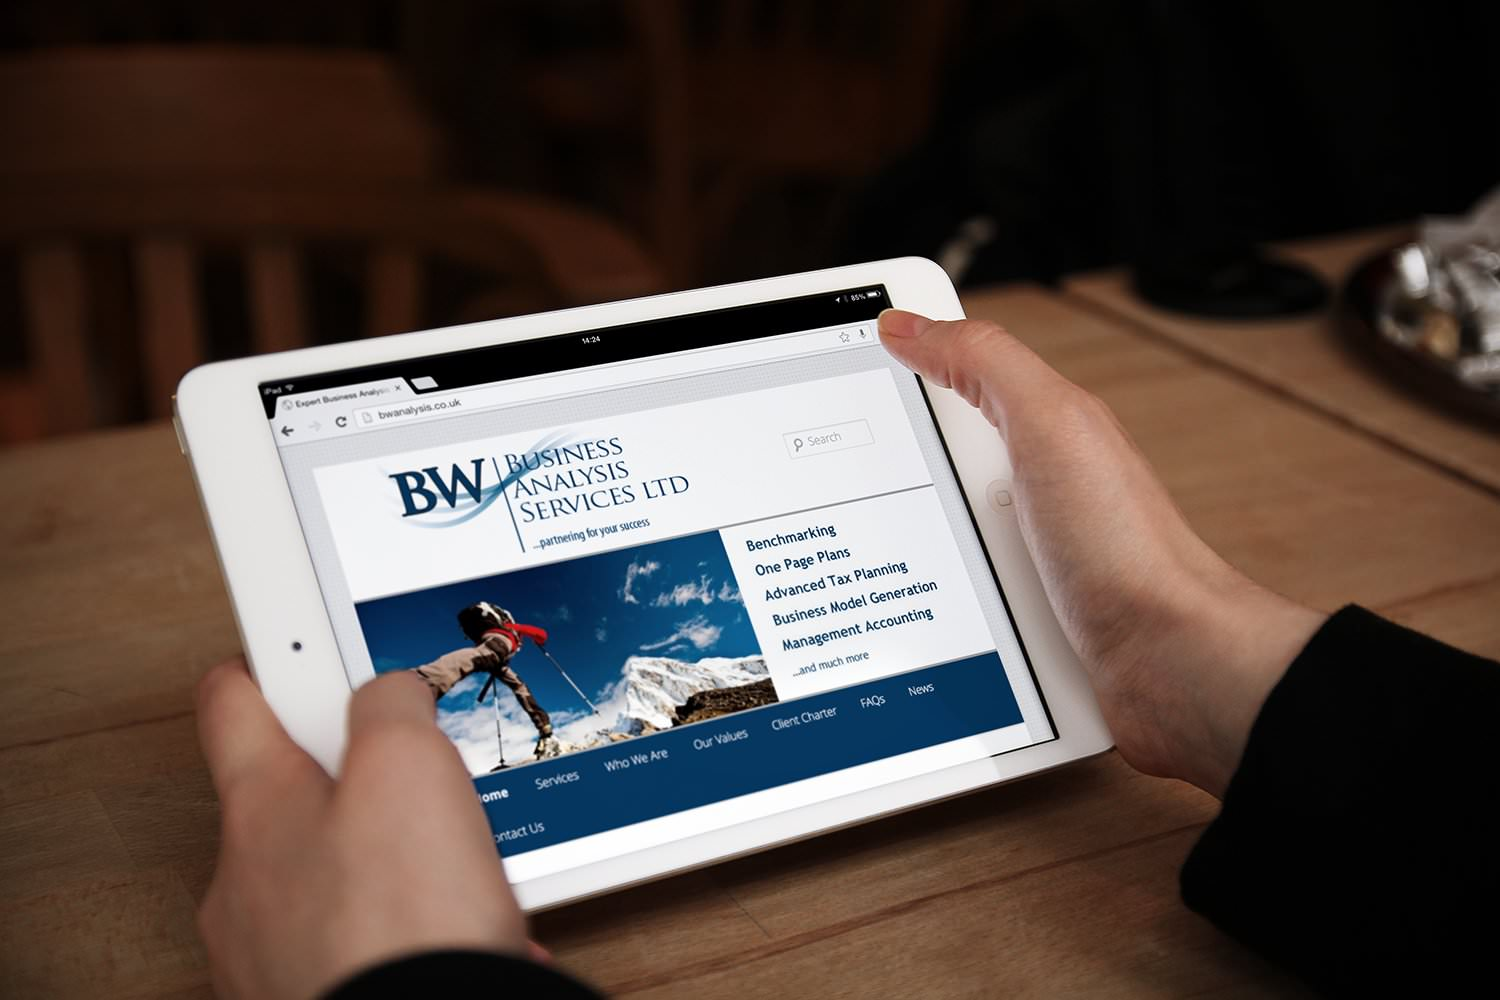 bw business analysis homepage tablet 1500x1000_mini